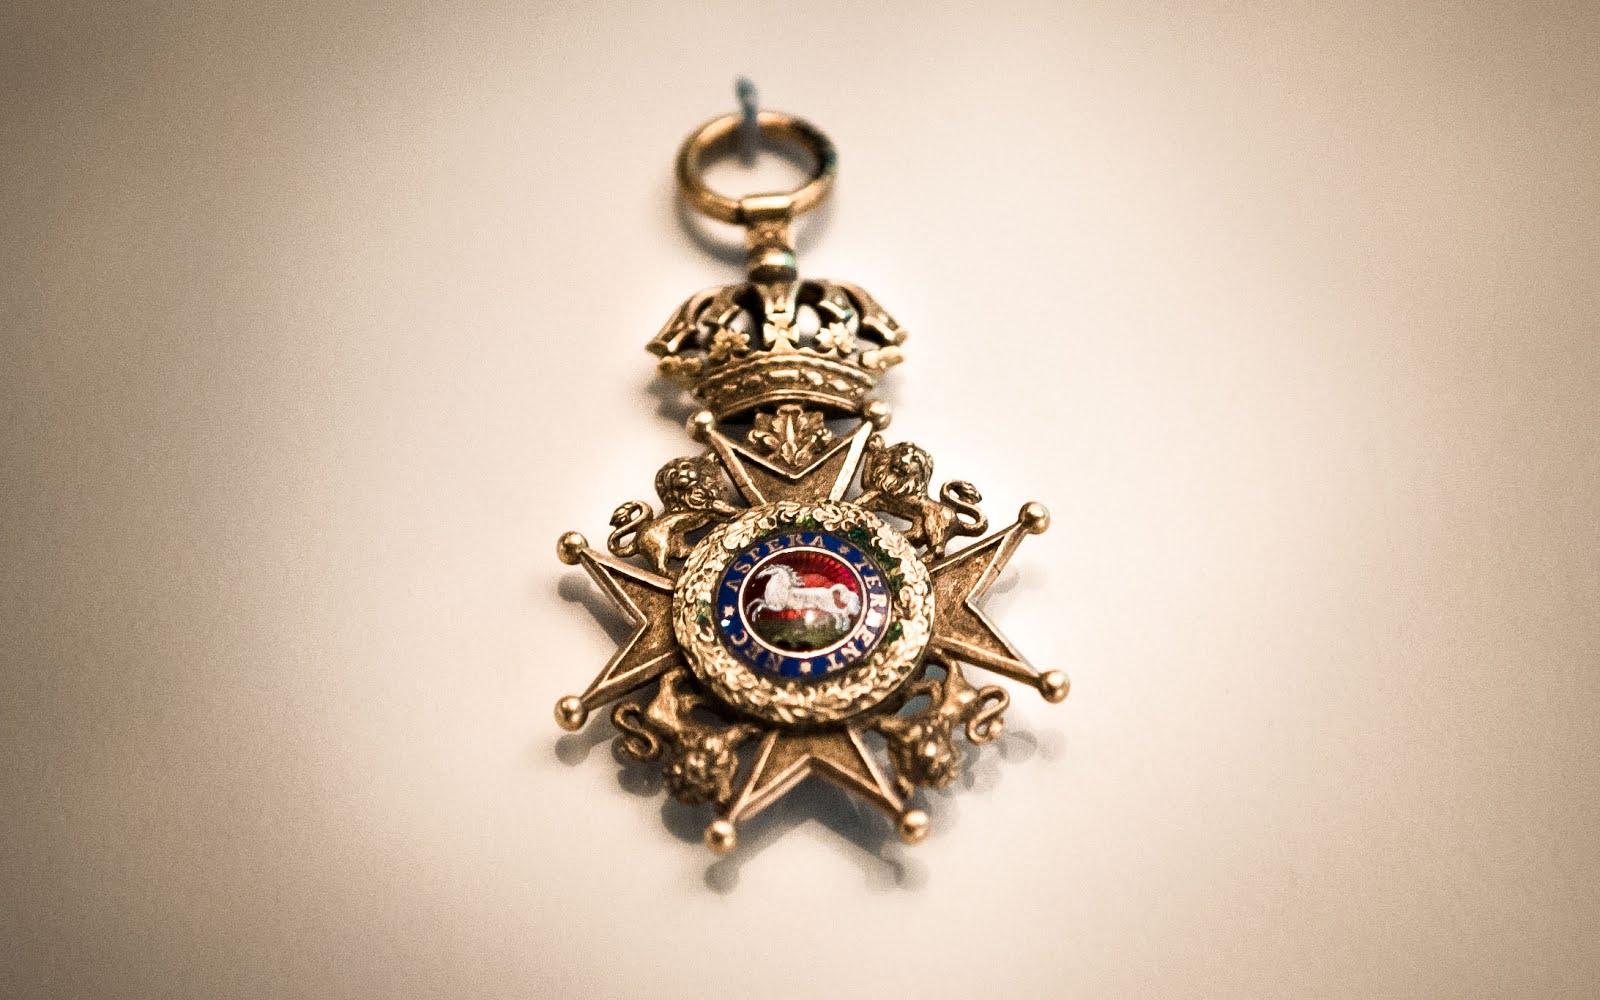 Franklin's Medal